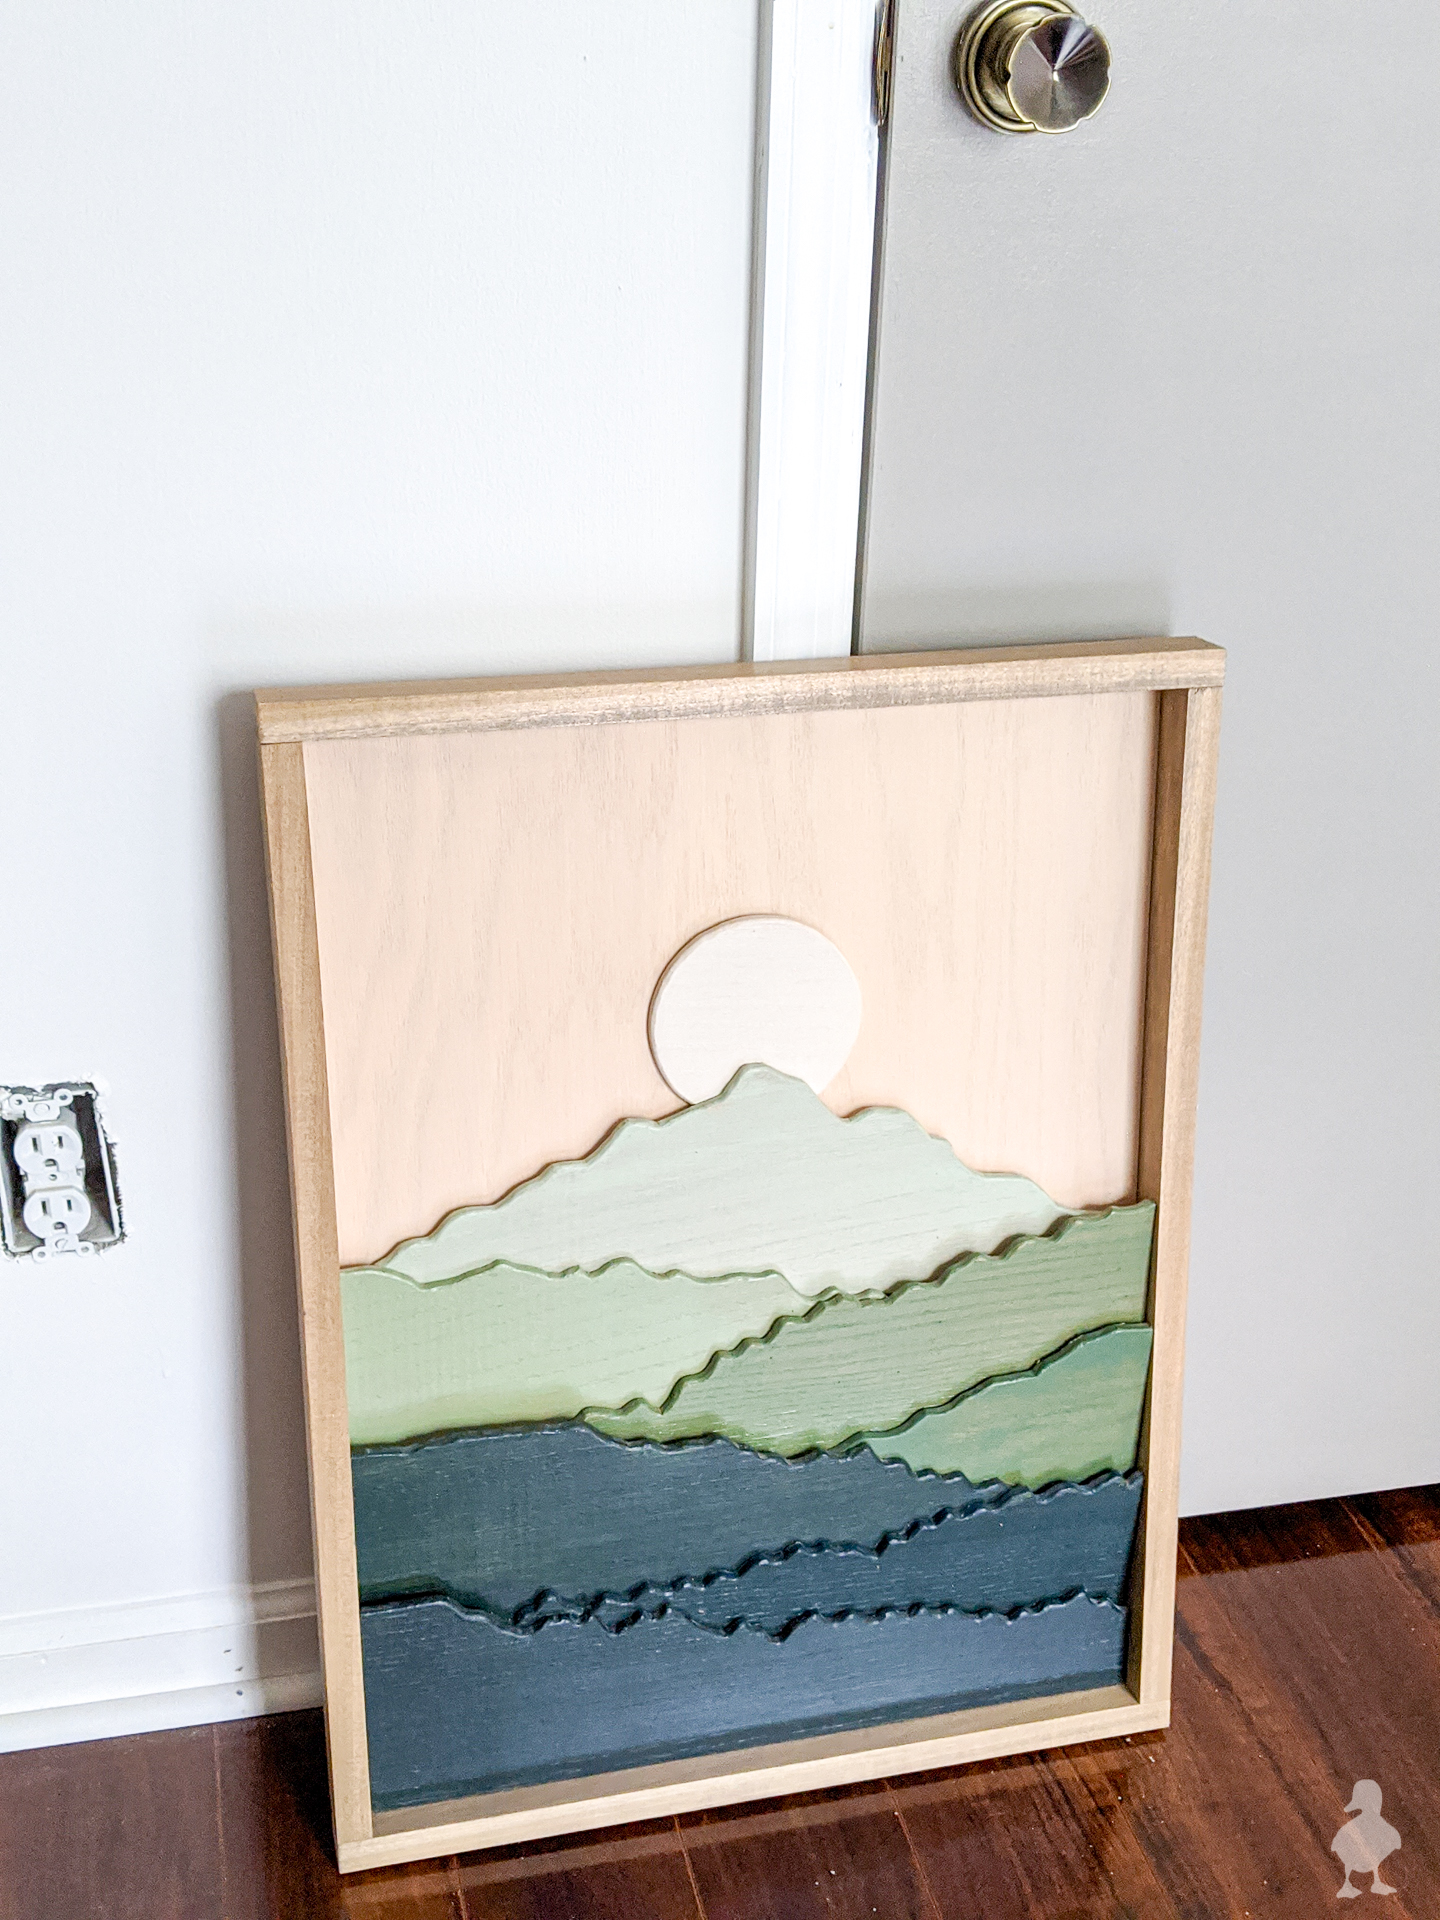 add a frame before hanging